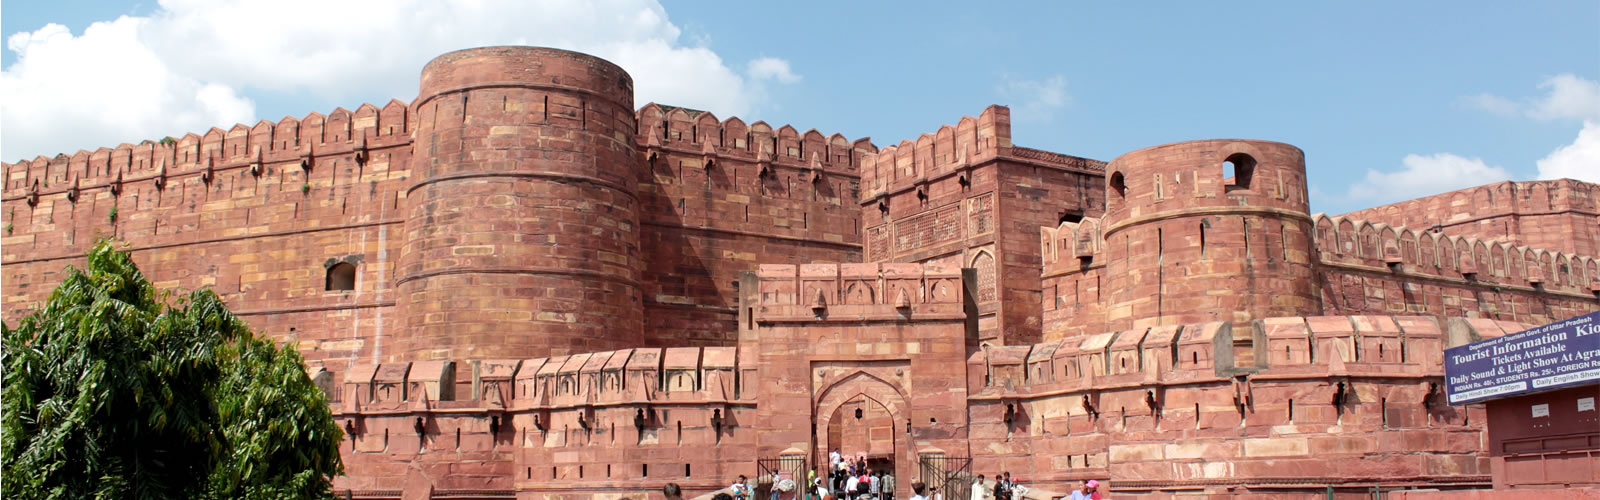 India Con - Agra Fort